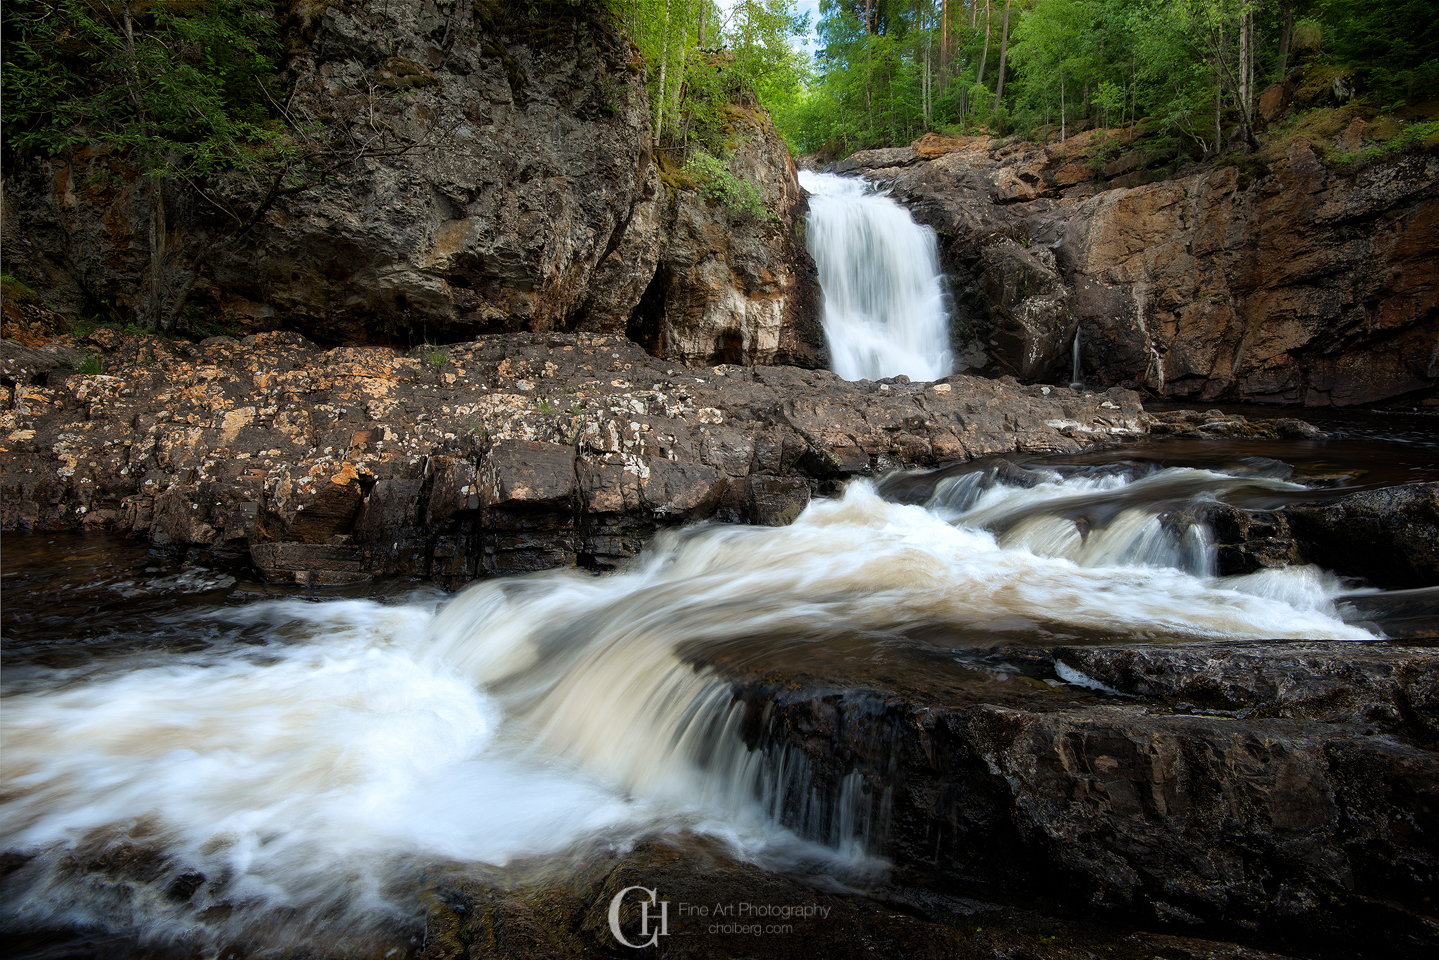 This waterfall lays a quick 15 minute drive from my home - yet I had never before heard of it!